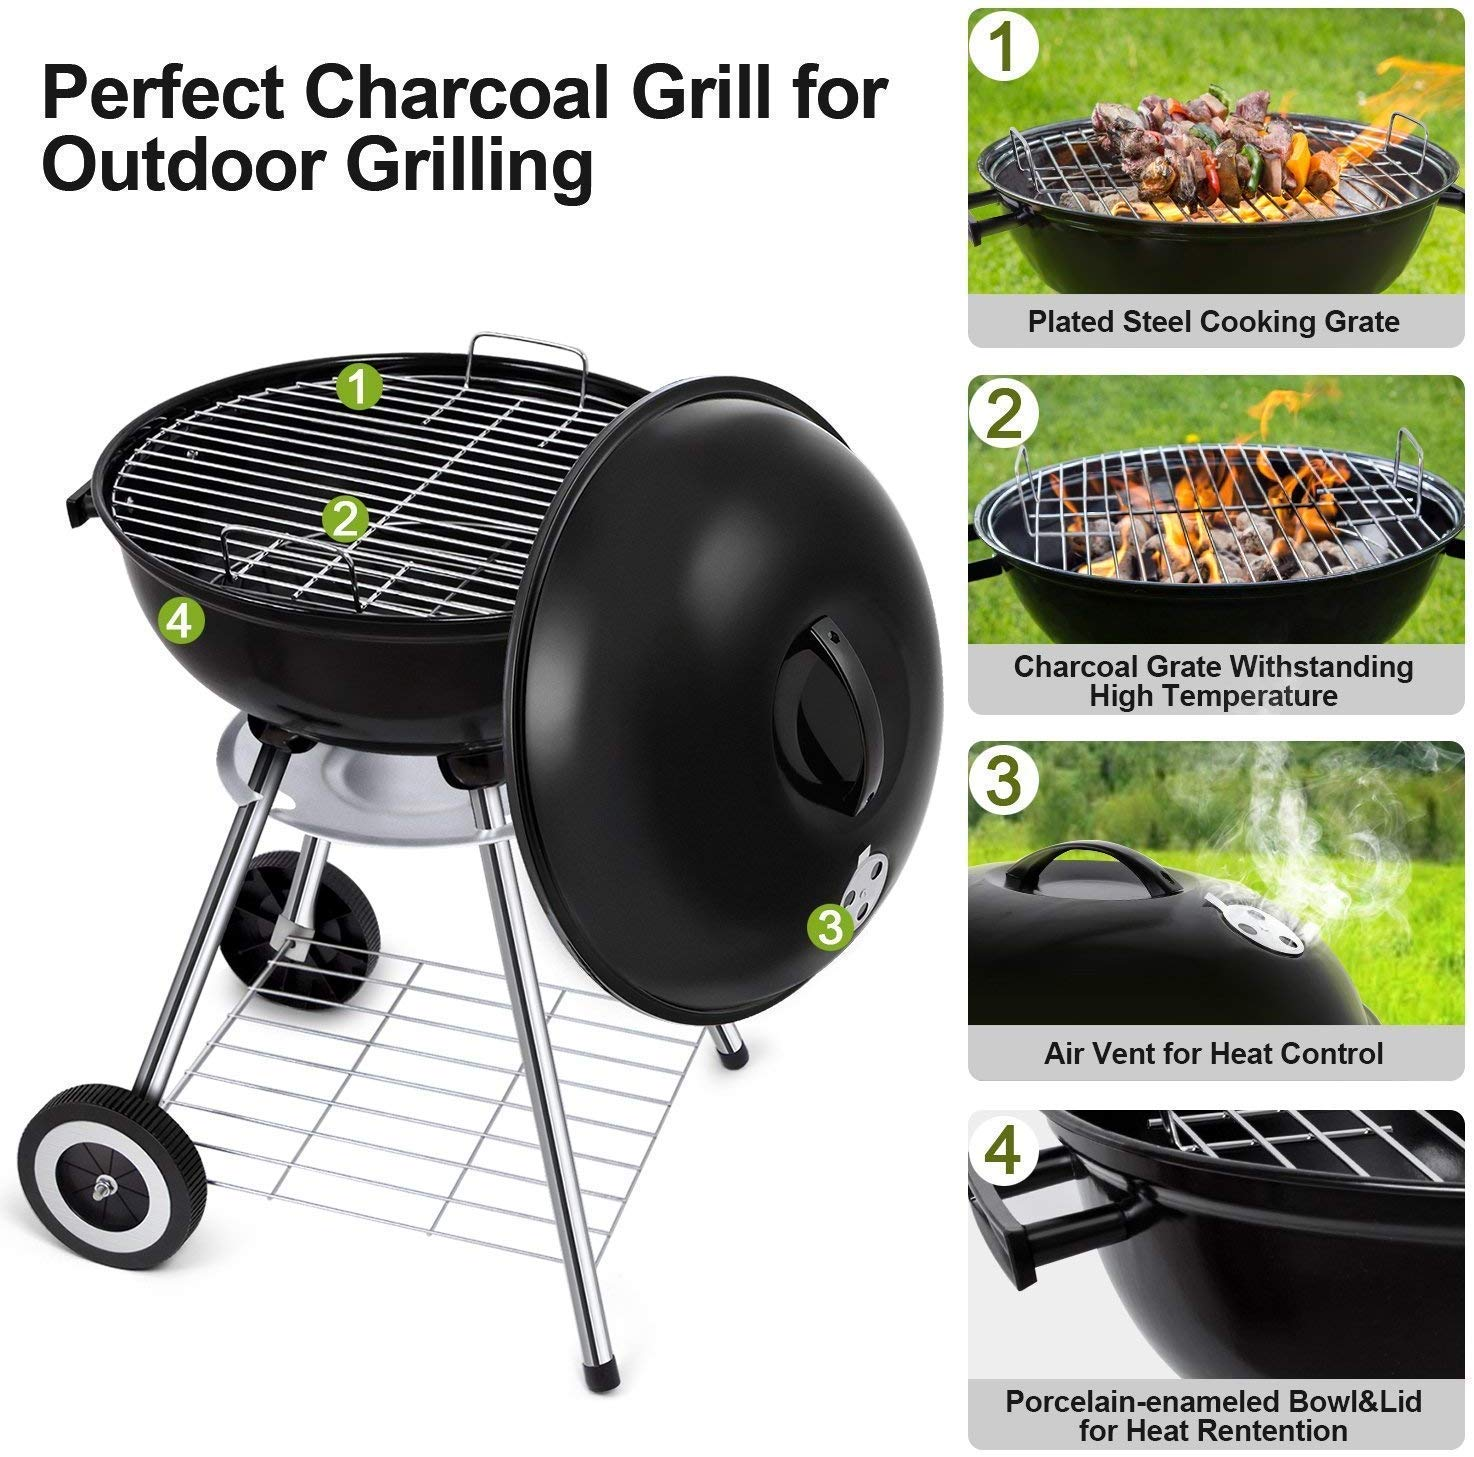 71OPllMUYzL - BEAU JARDIN Portable Charcoal Grill for Outdoor Grilling with Lid 4 Legs Rolls 18in Grill BBQ Kettle Outdoor Picnic Patio Backyard Camping Tailgating Steel Cooking Grate for Steak Chicken